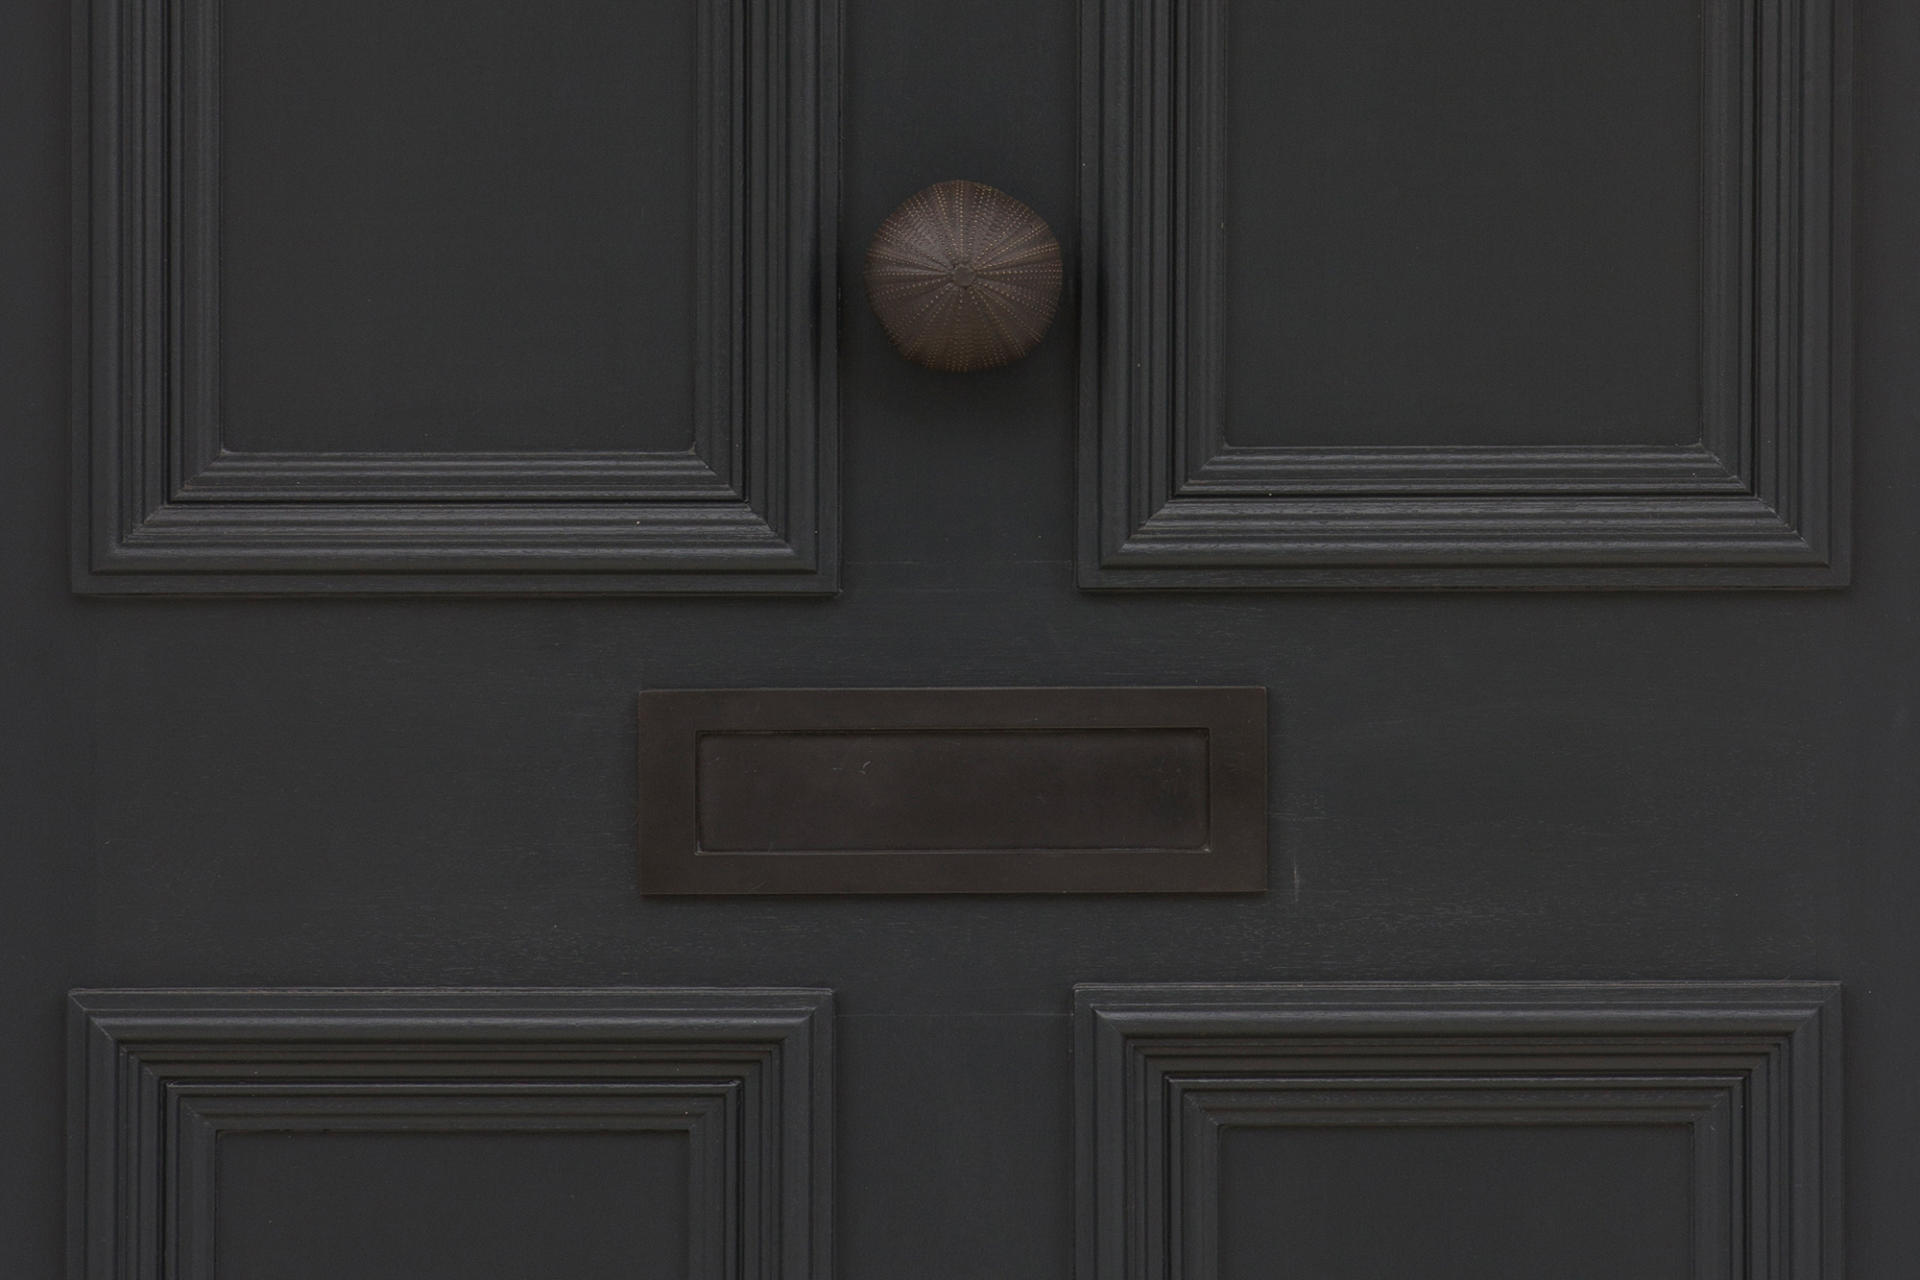 Bespoke door hardware by Collier Webb for Samantha Todhunter Design